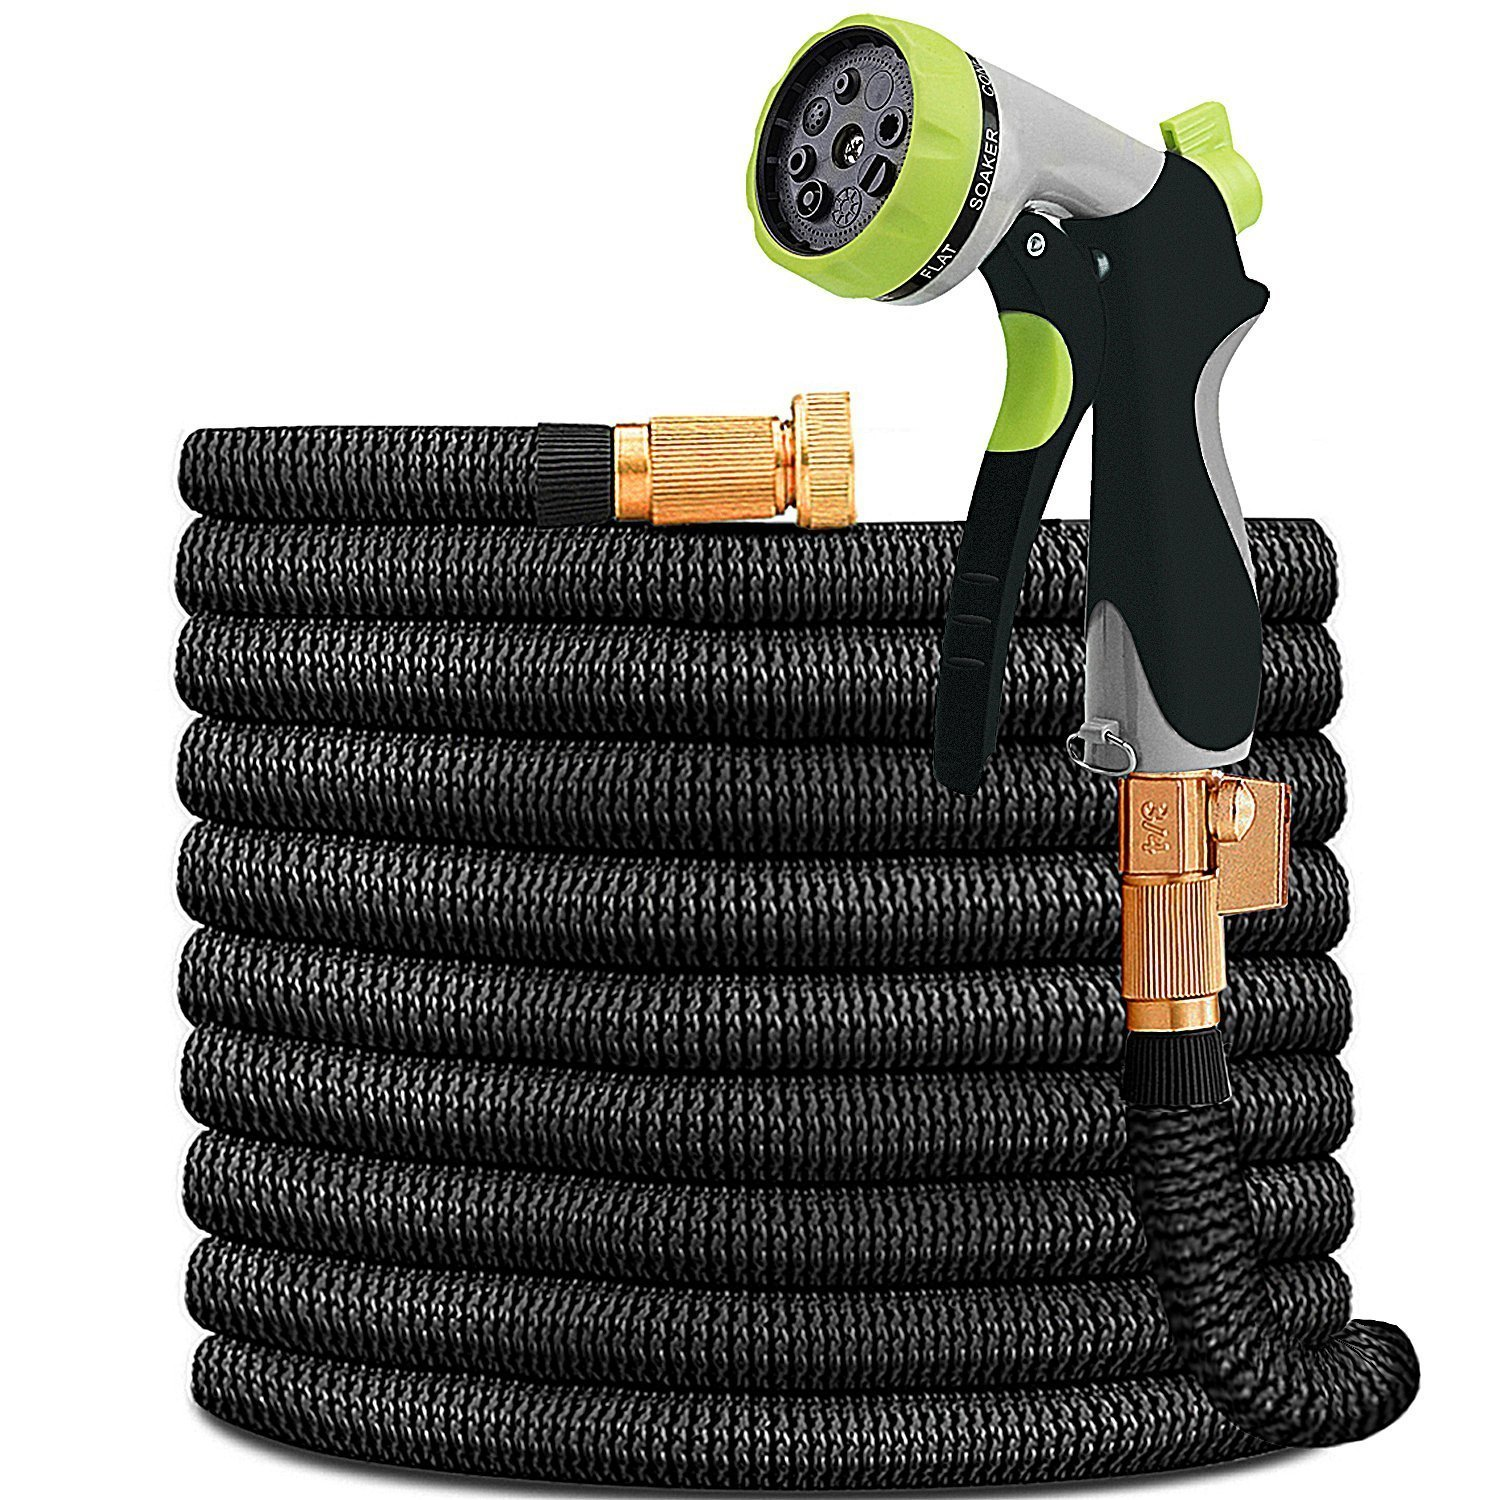 HYRIXDIRECT 50ft Garden Hose Expandable Water Hose Lightweight with Metal 8 Function Spray Nozzle Double Latex Core 3/4'' Solid Brass Fittings Extra Strength Fabric Flexible Expanding Hose